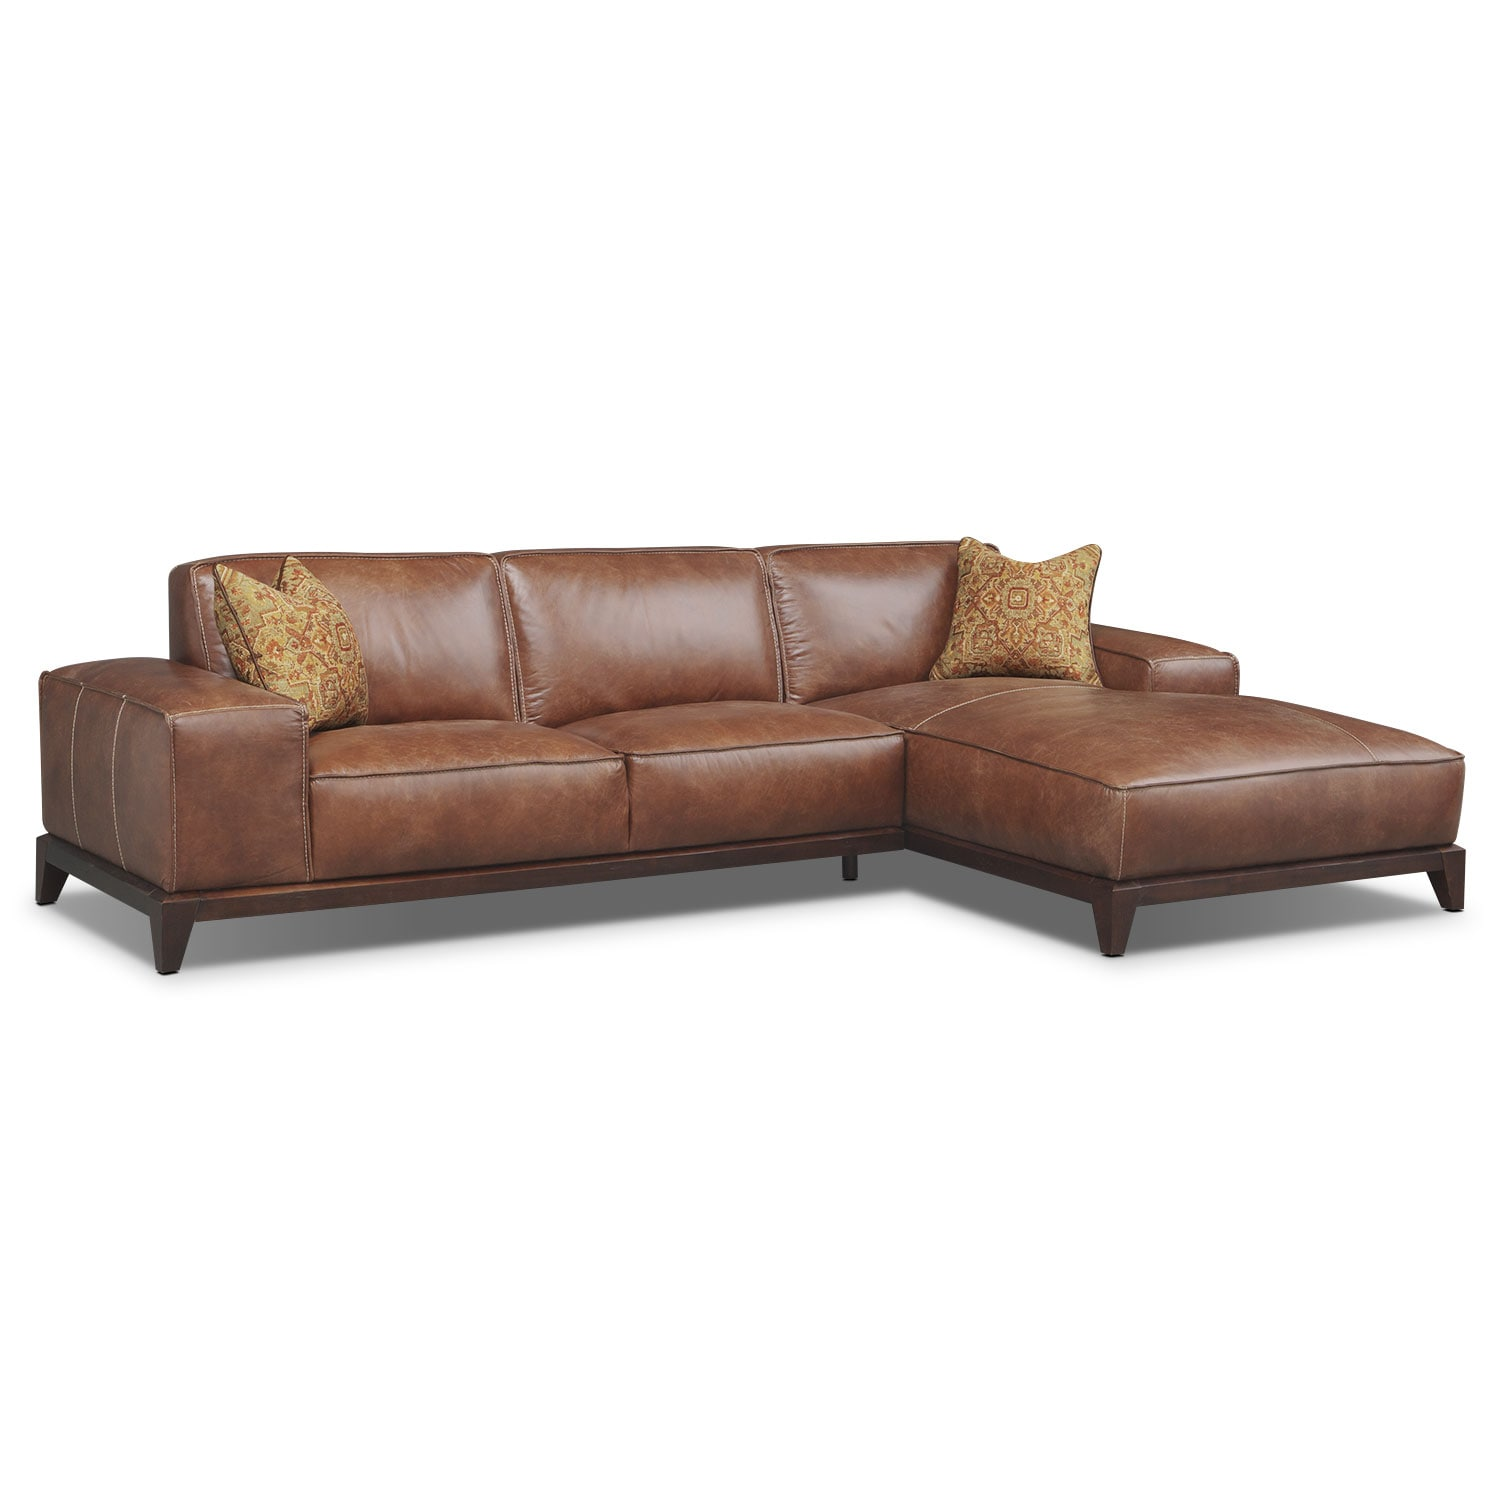 Harrison 2-Piece Right-Facing Sectional - Tobacco